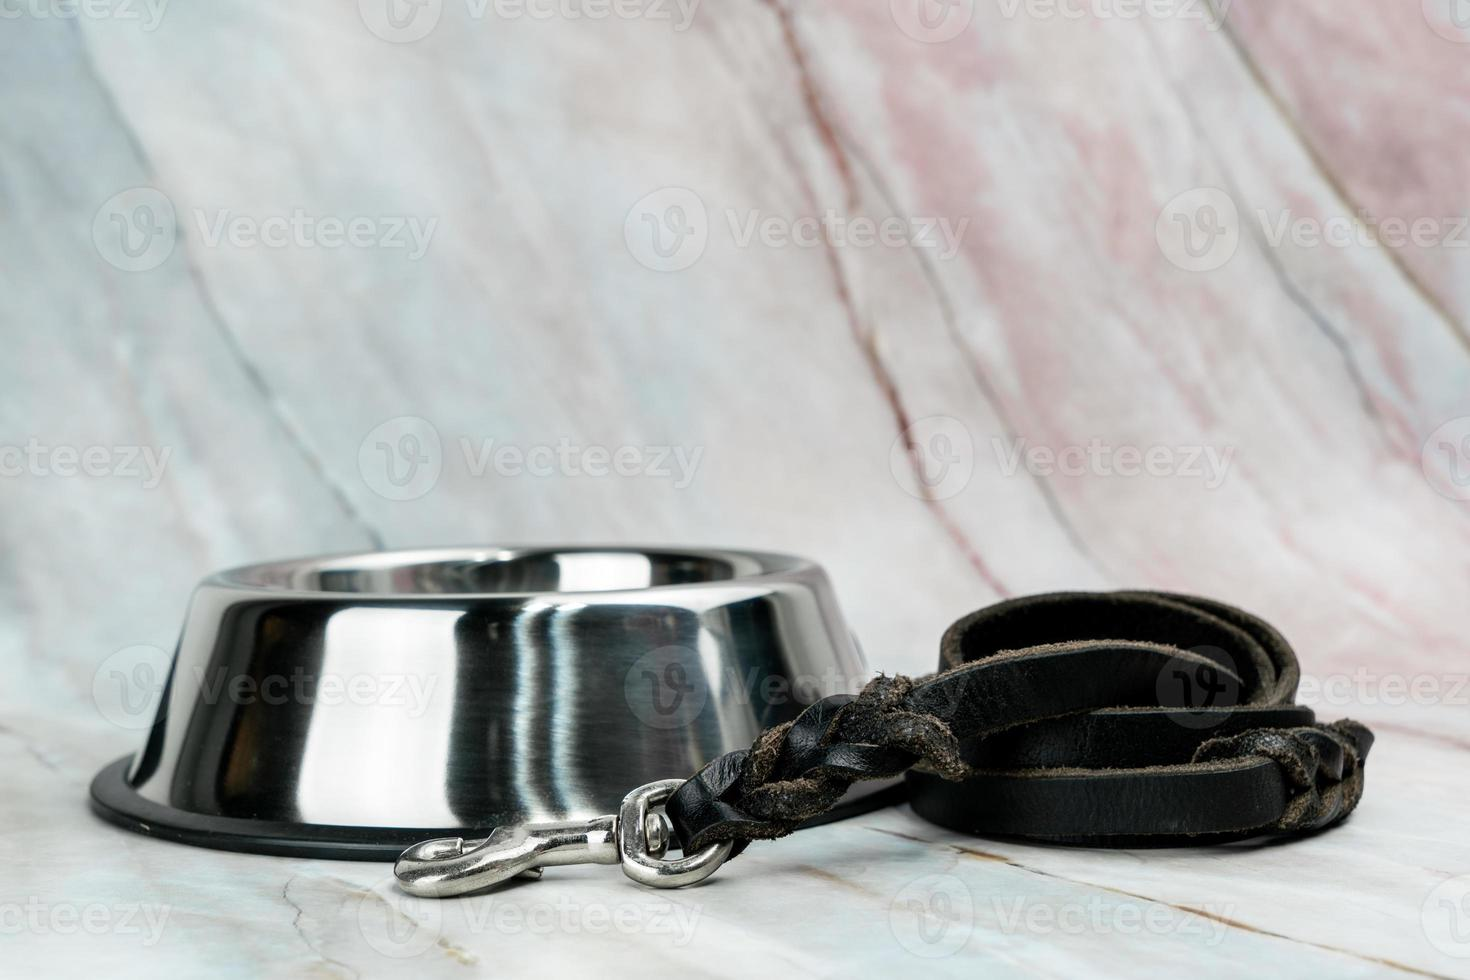 Bowl with leashes for dog or cat.   Pet accessories concept. photo